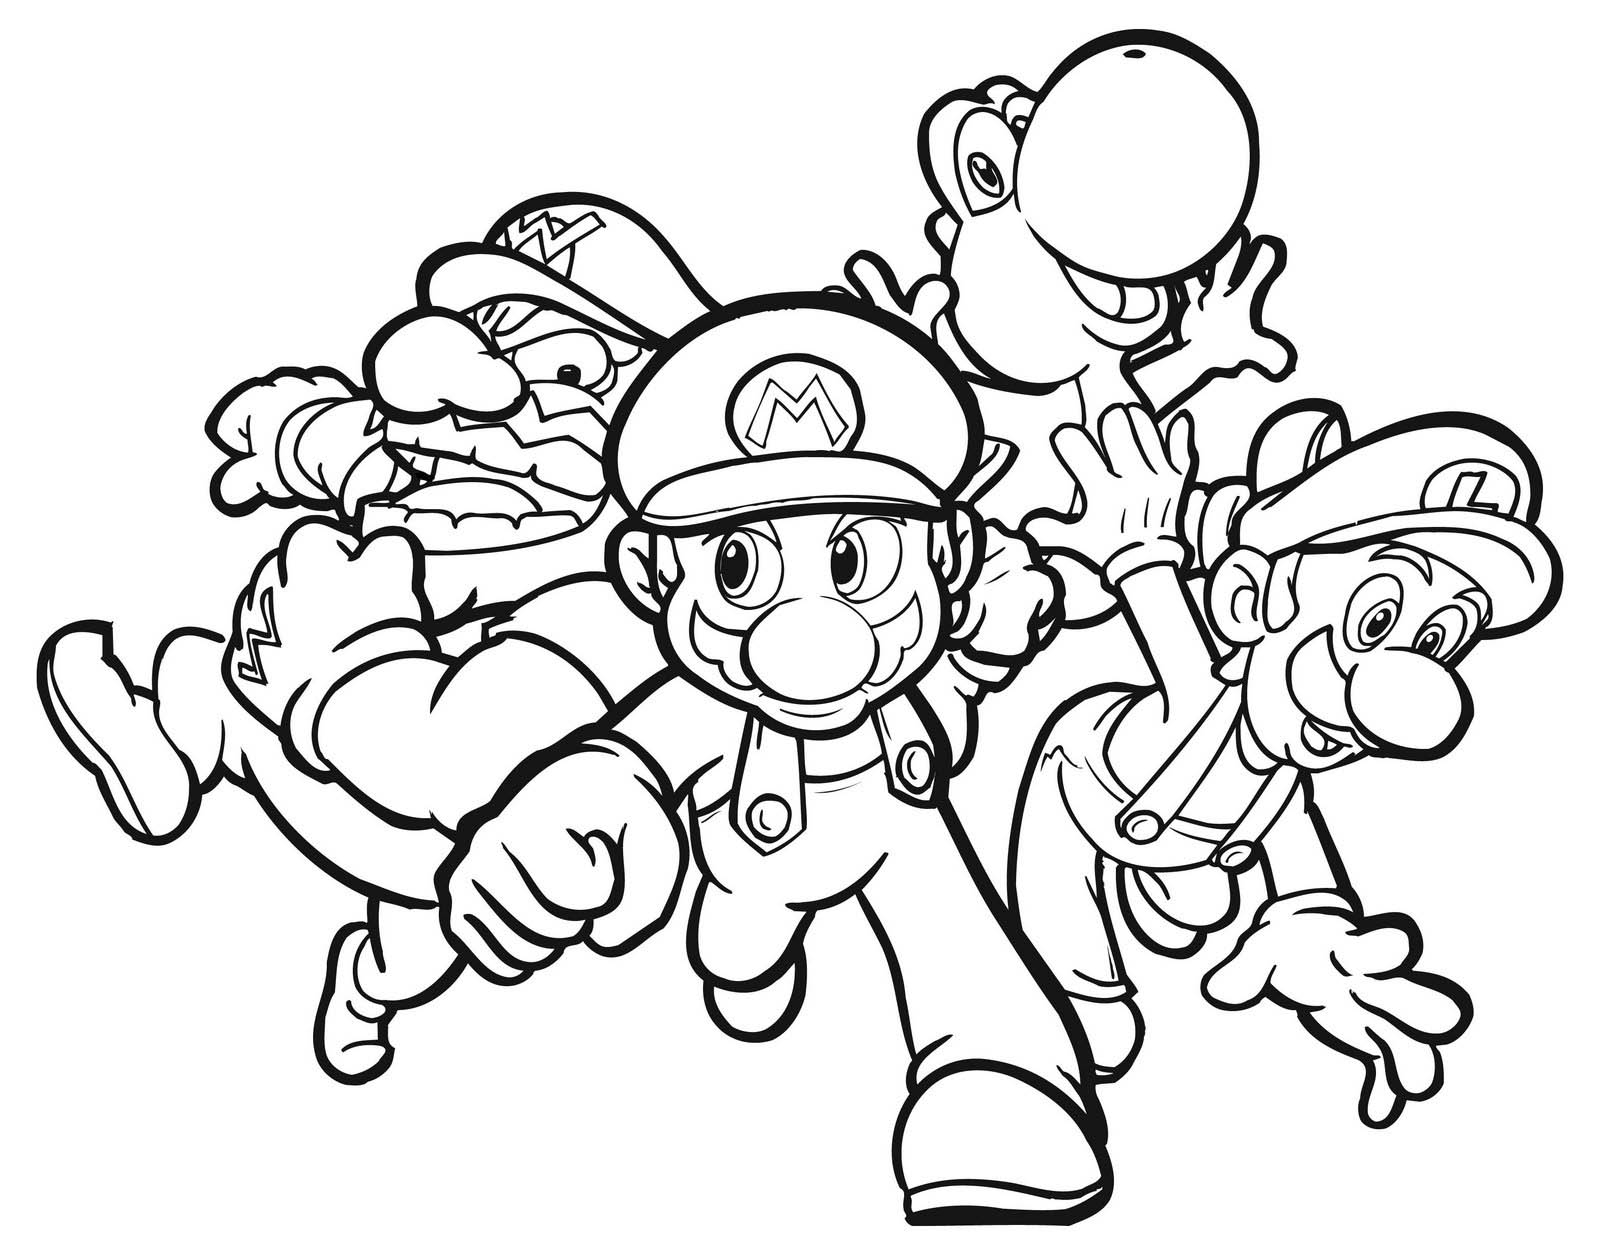 printable mario coloring pages - mario coloring pages